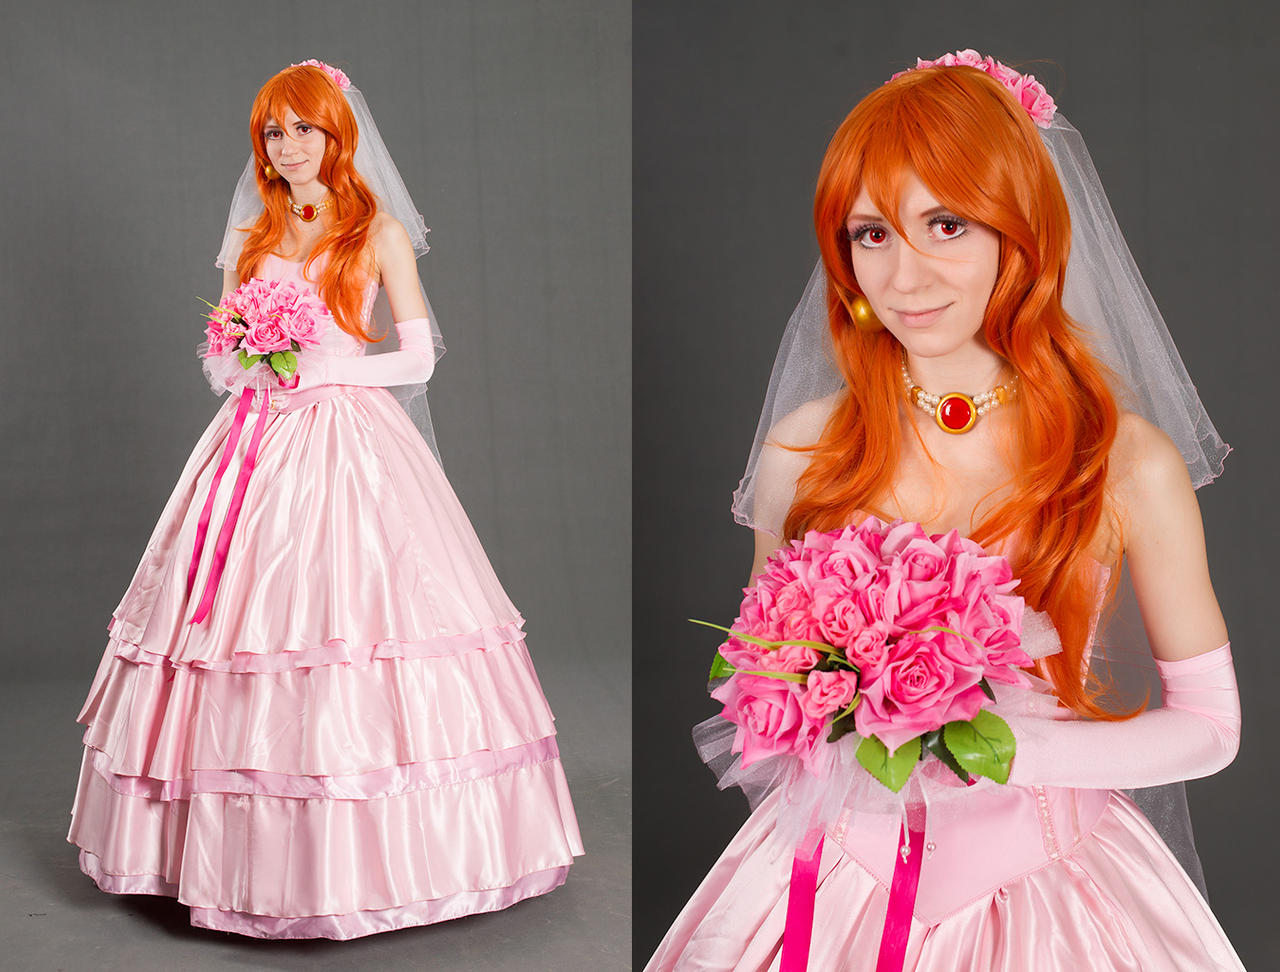 Lina Inverse - wedding dress by GreatQueenLina